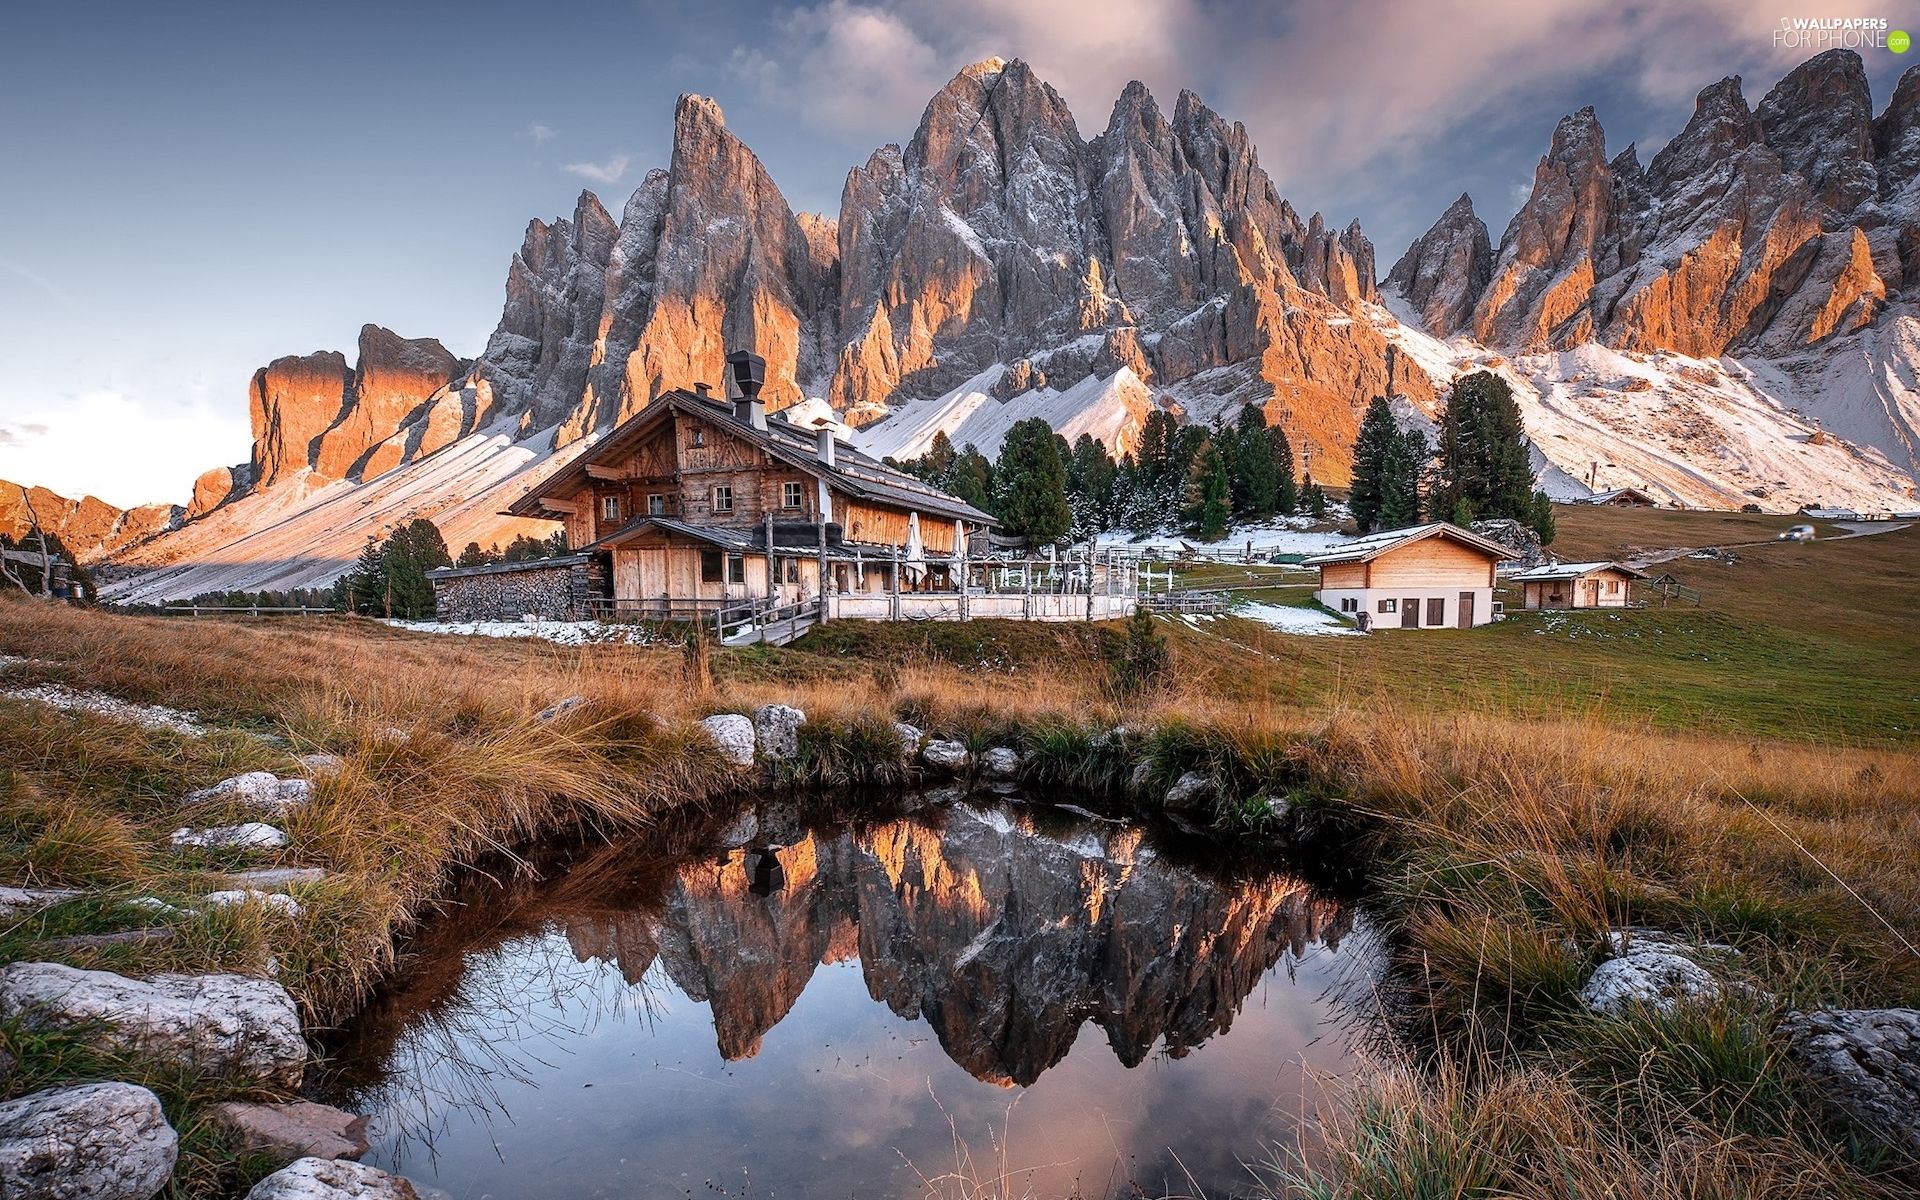 Puez-Odle nature park, house, viewes, Mountains, trees, Dolomites, Italy, clouds